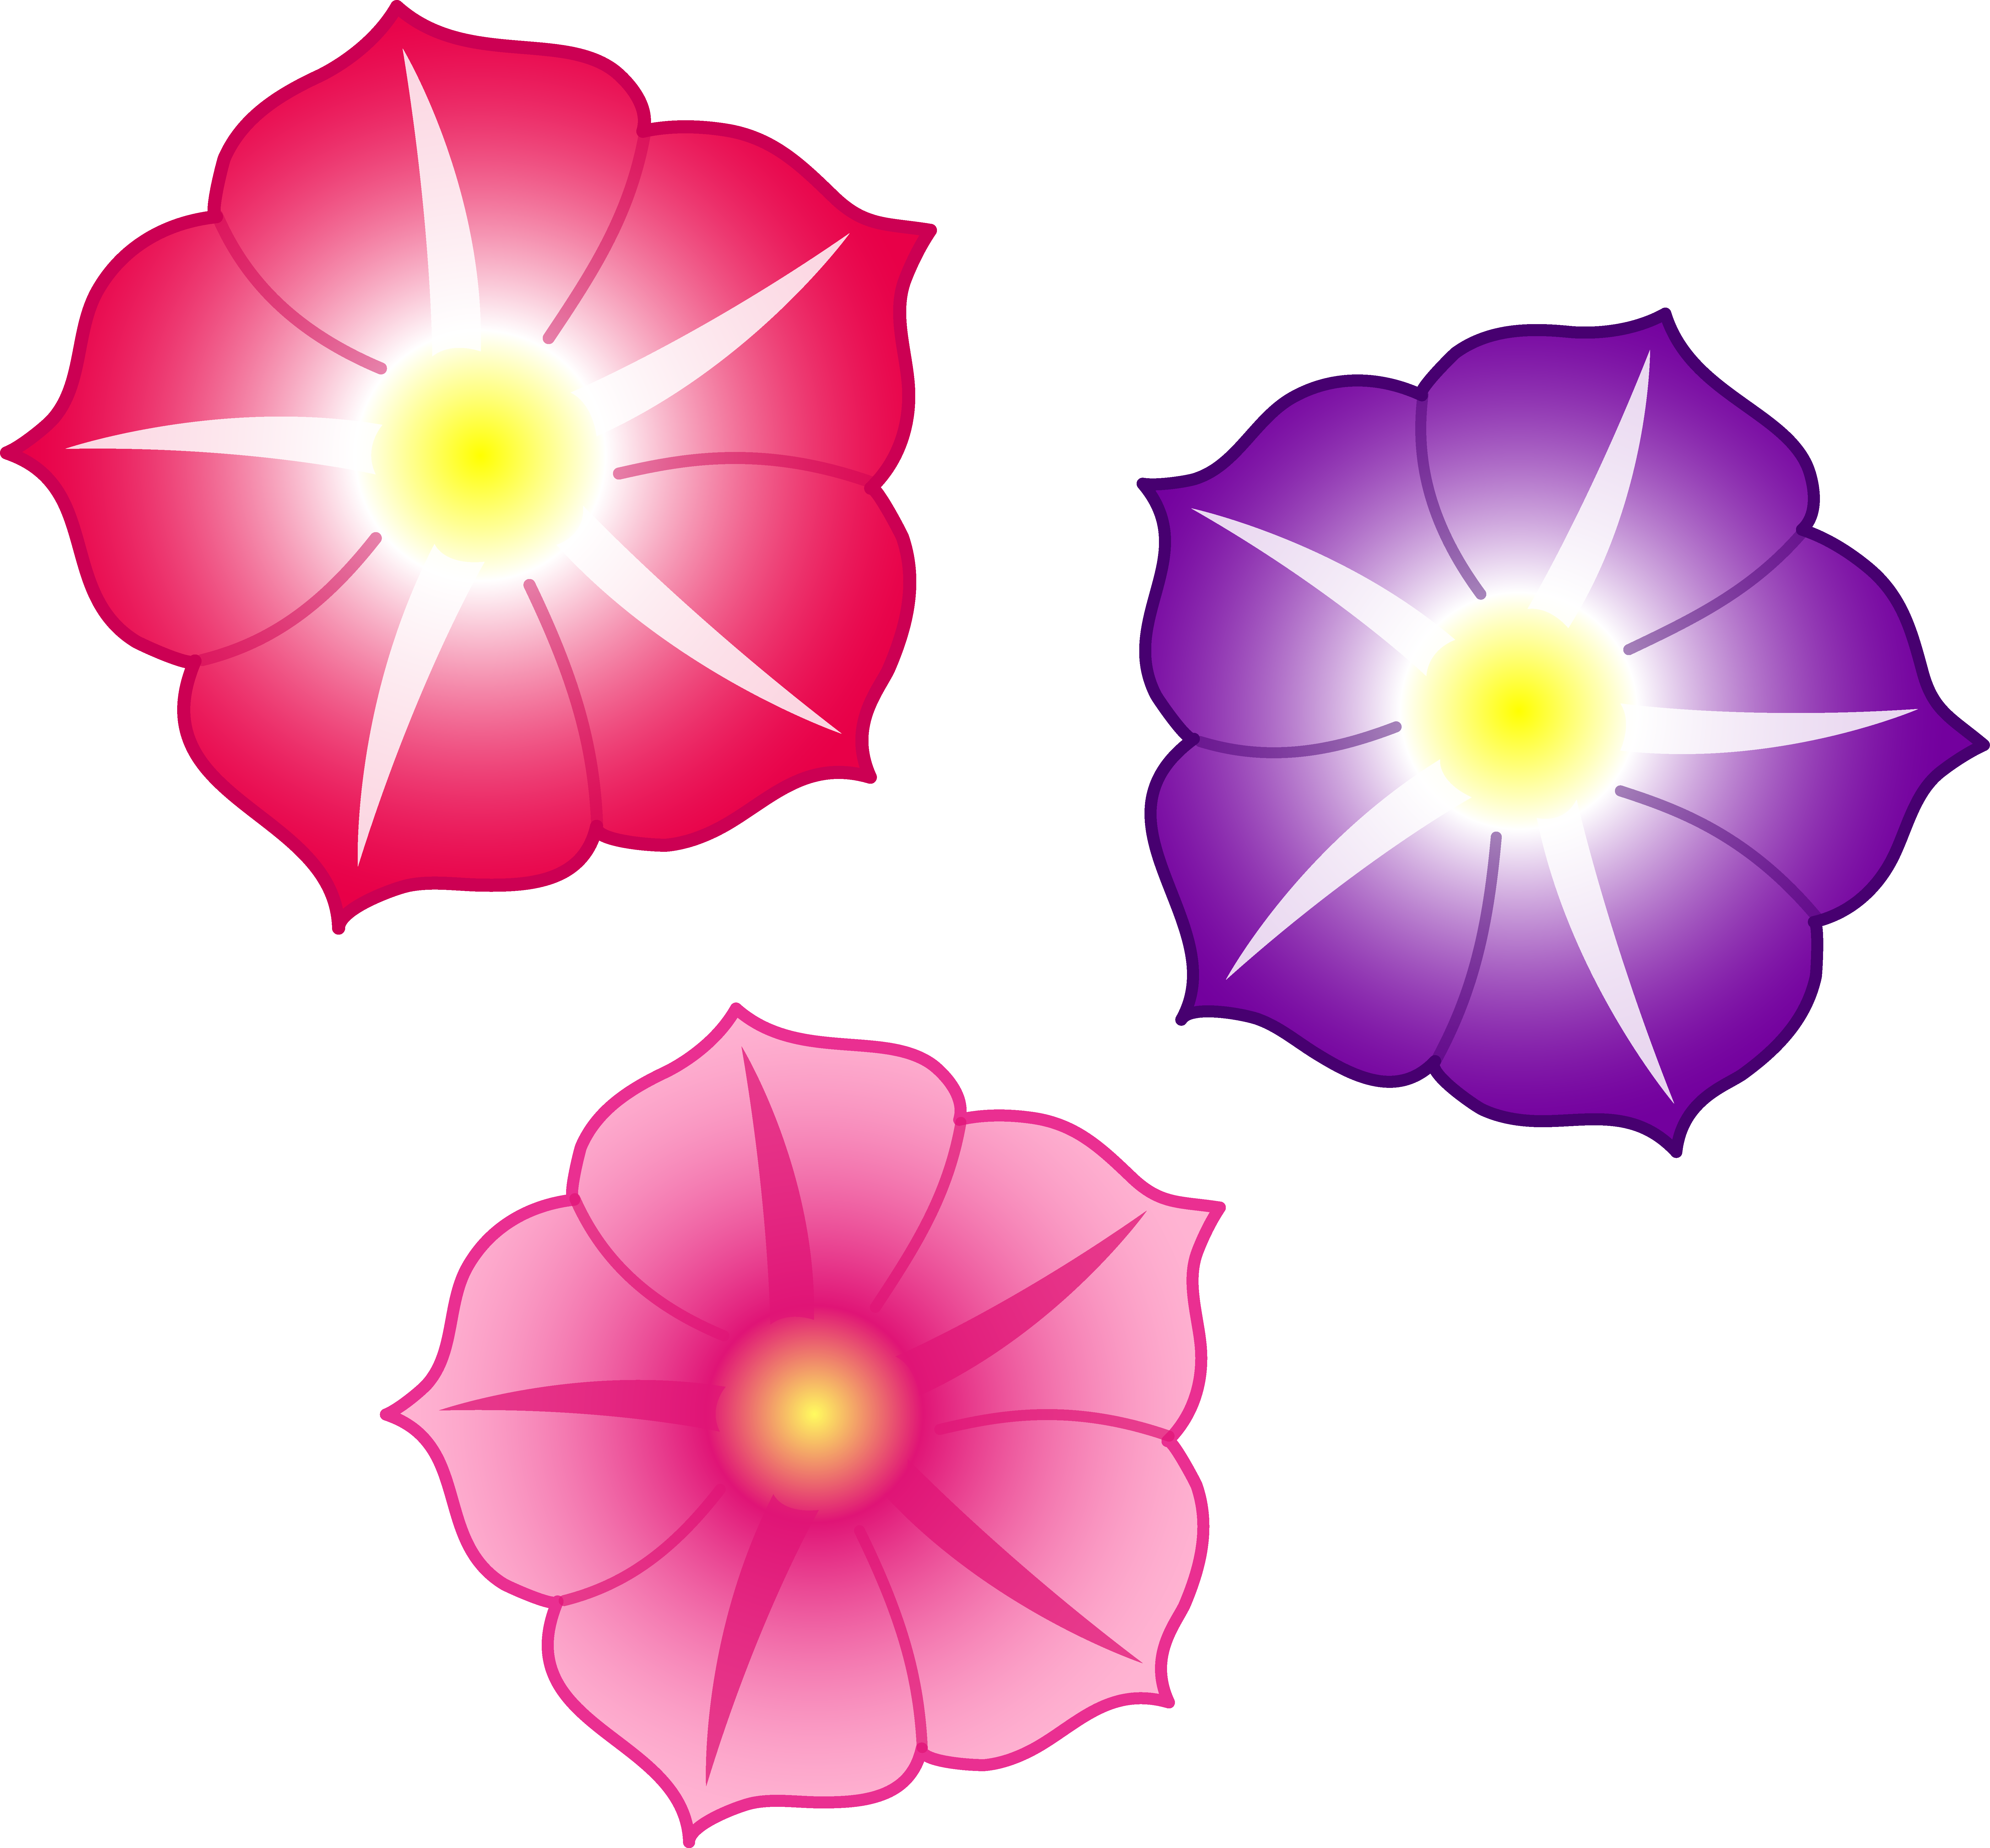 Clipart colorful flowers.